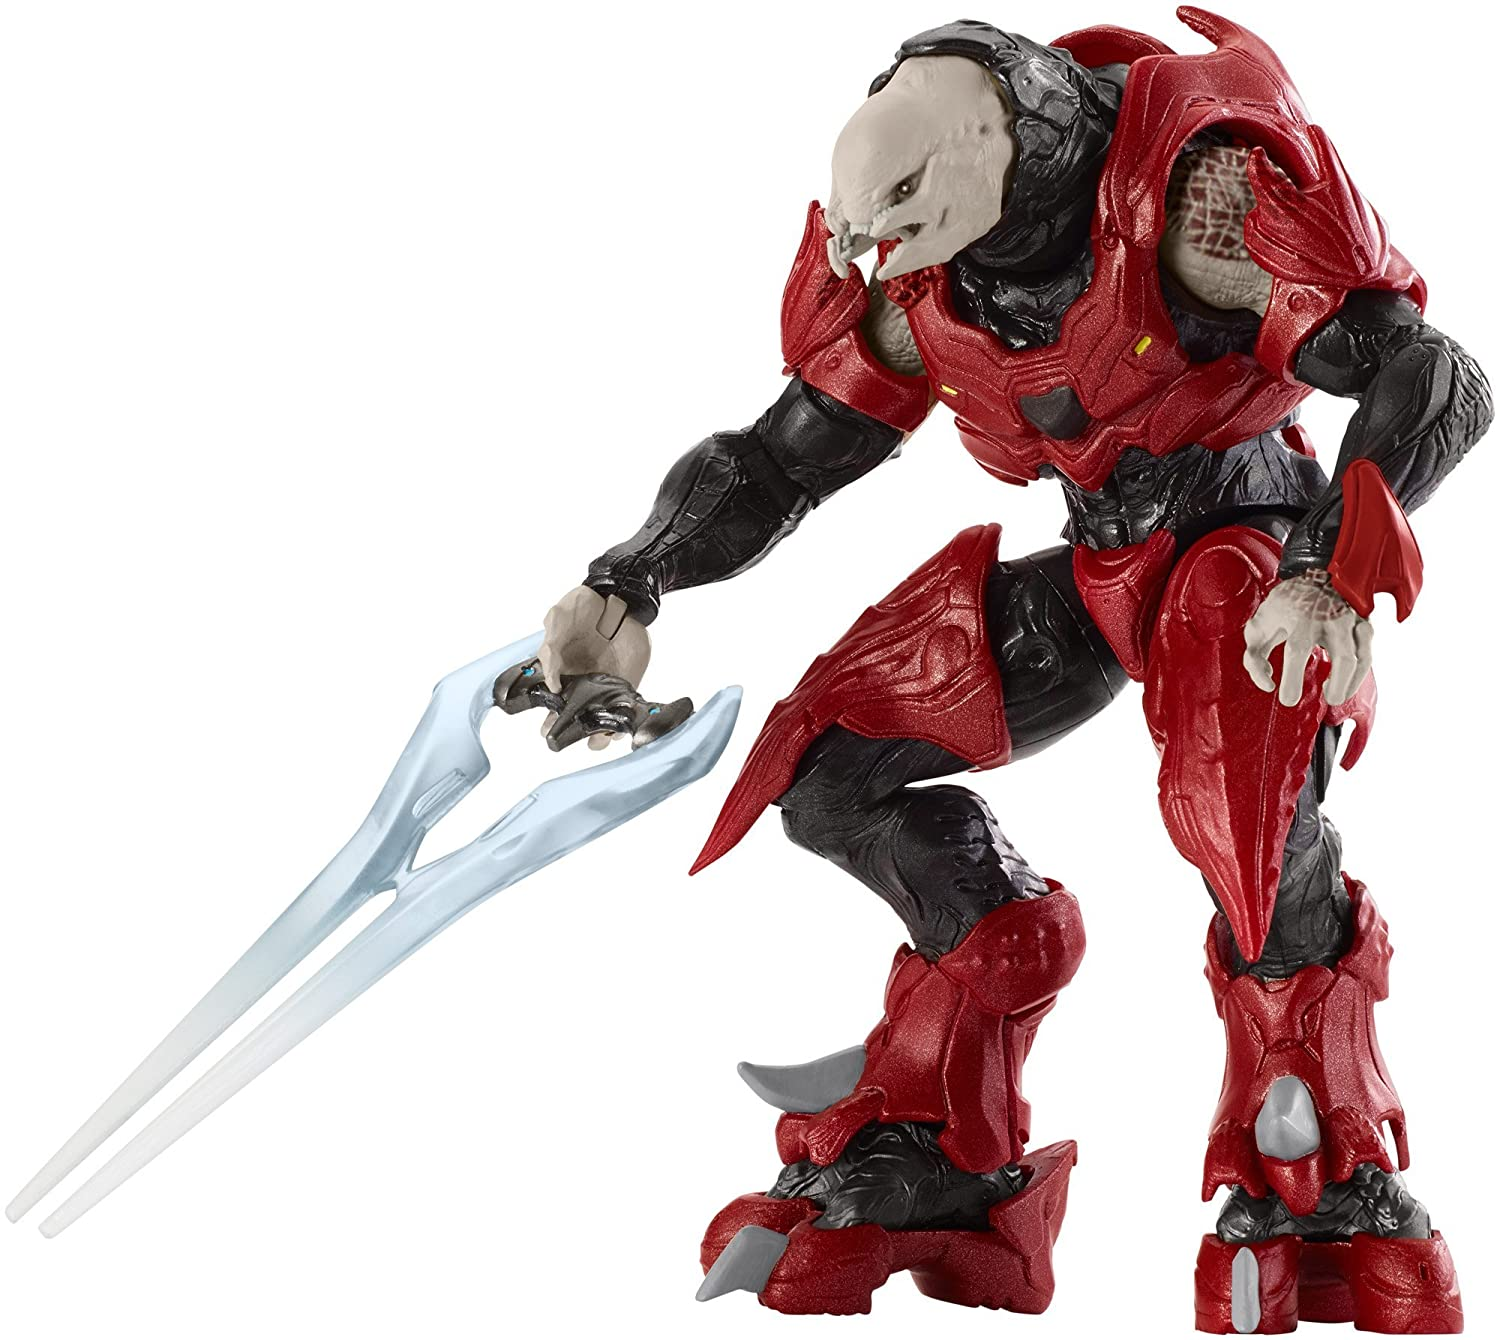 Halo Covenant Elite Zealot 6 Figure Mattel DNV06